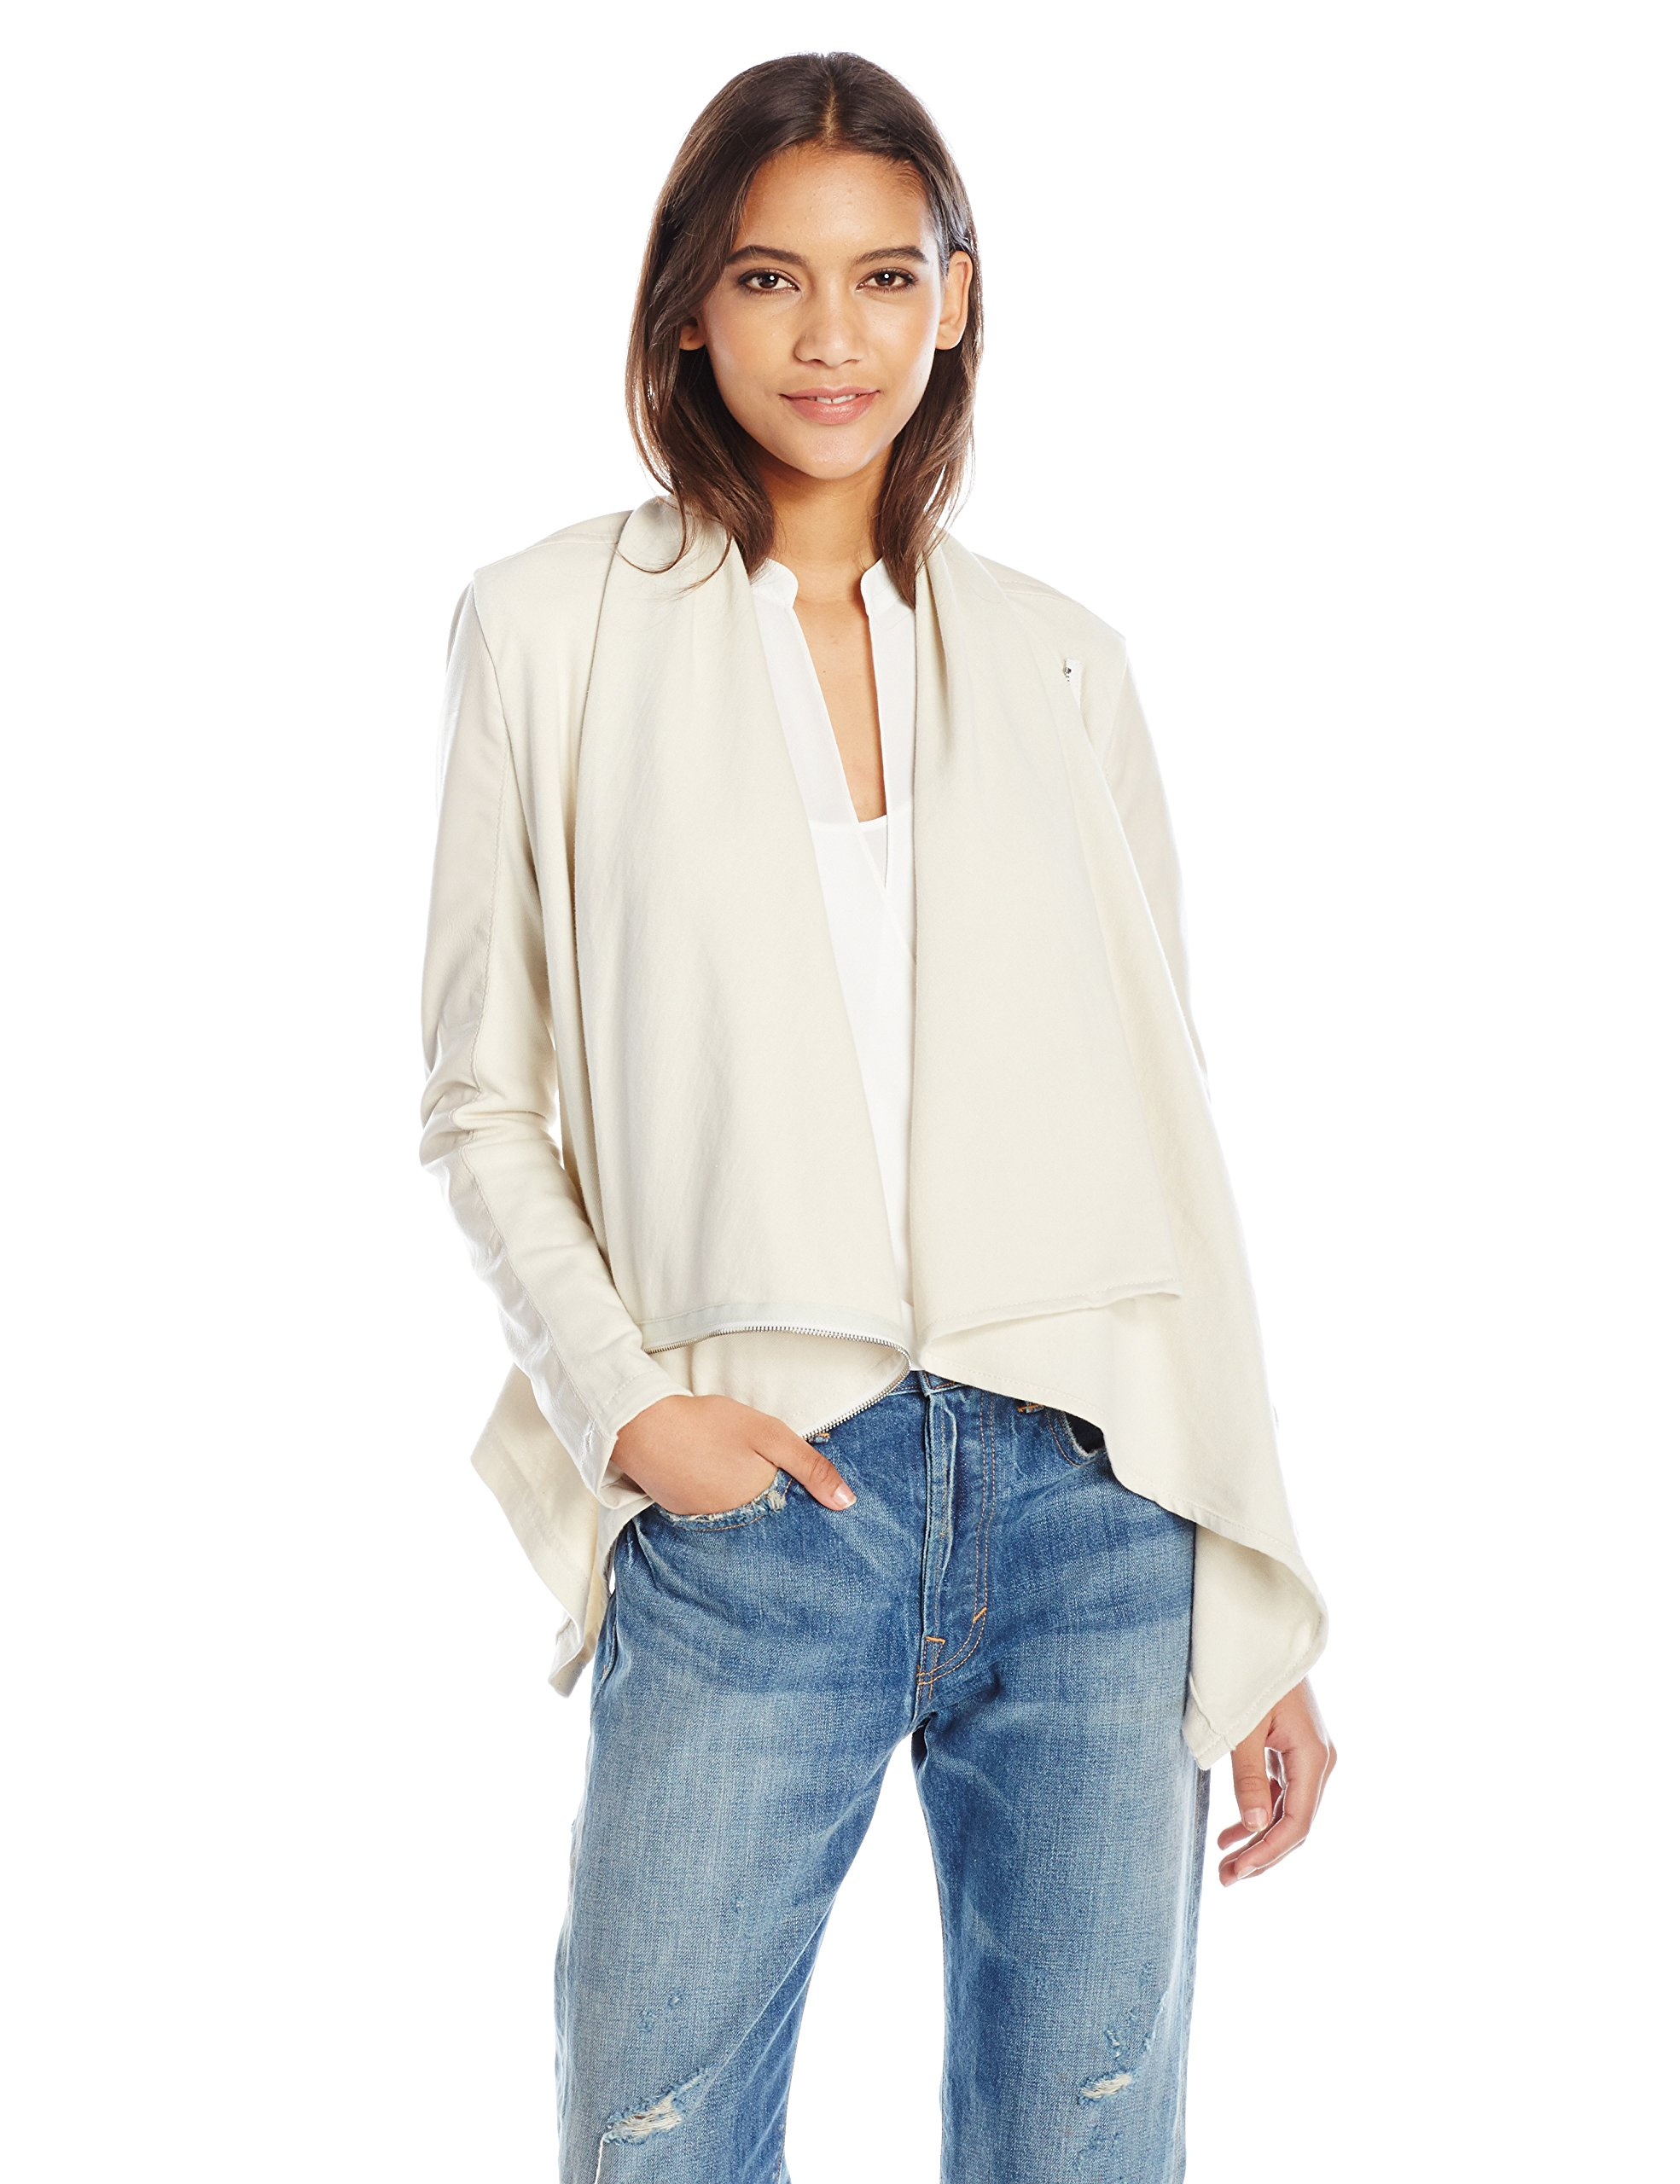 [BLANKNYC] Women's Faux-leather and Knit Jacket, Beige, Large